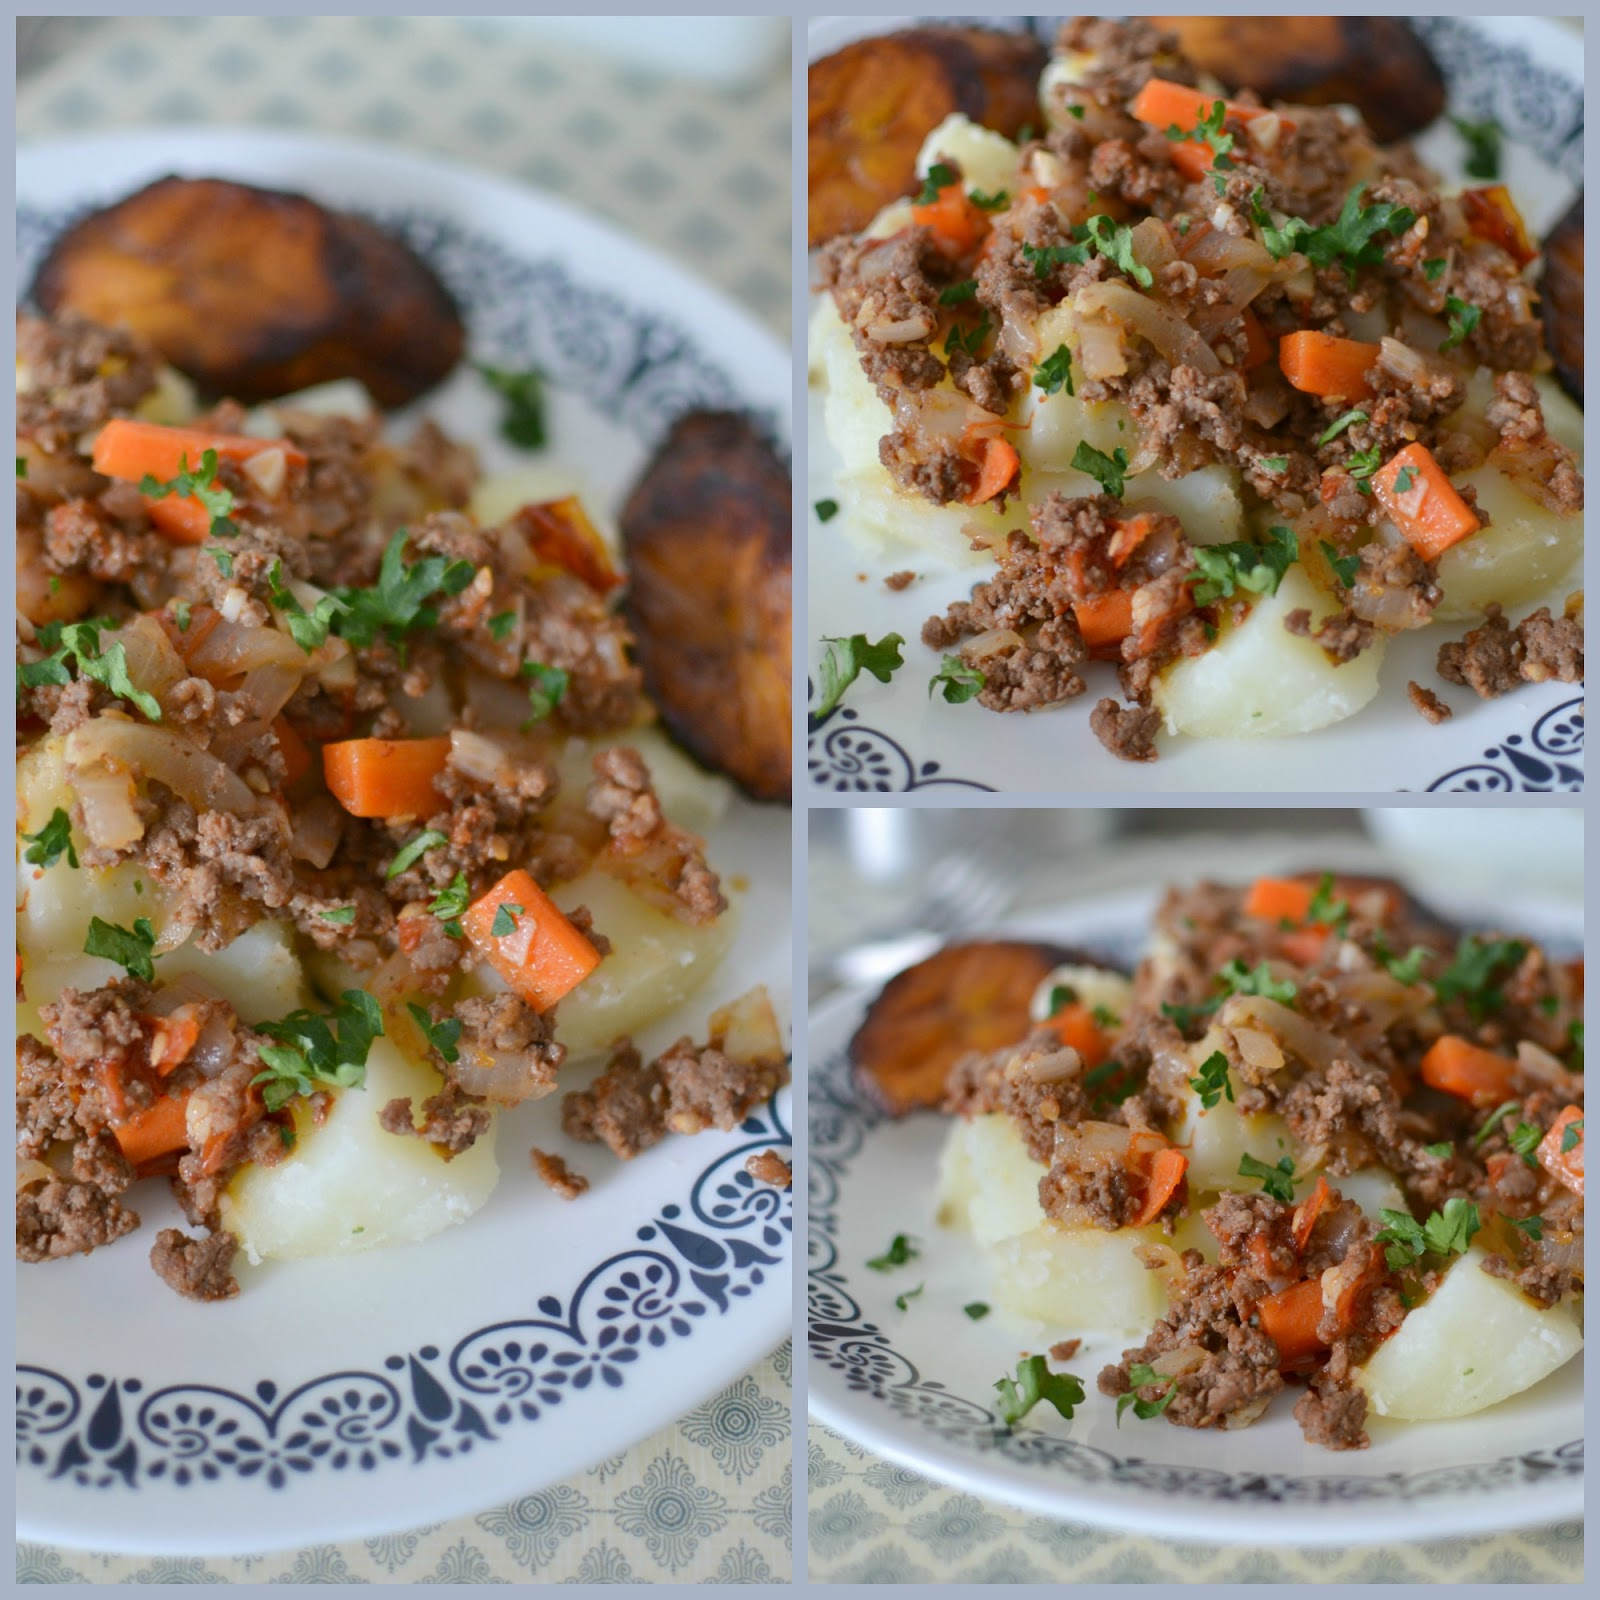 8 More Delicious And Easy Ground Beef Dinner Ideas: Hot Eats And Cool Reads: Ground Beef And Vegetables With